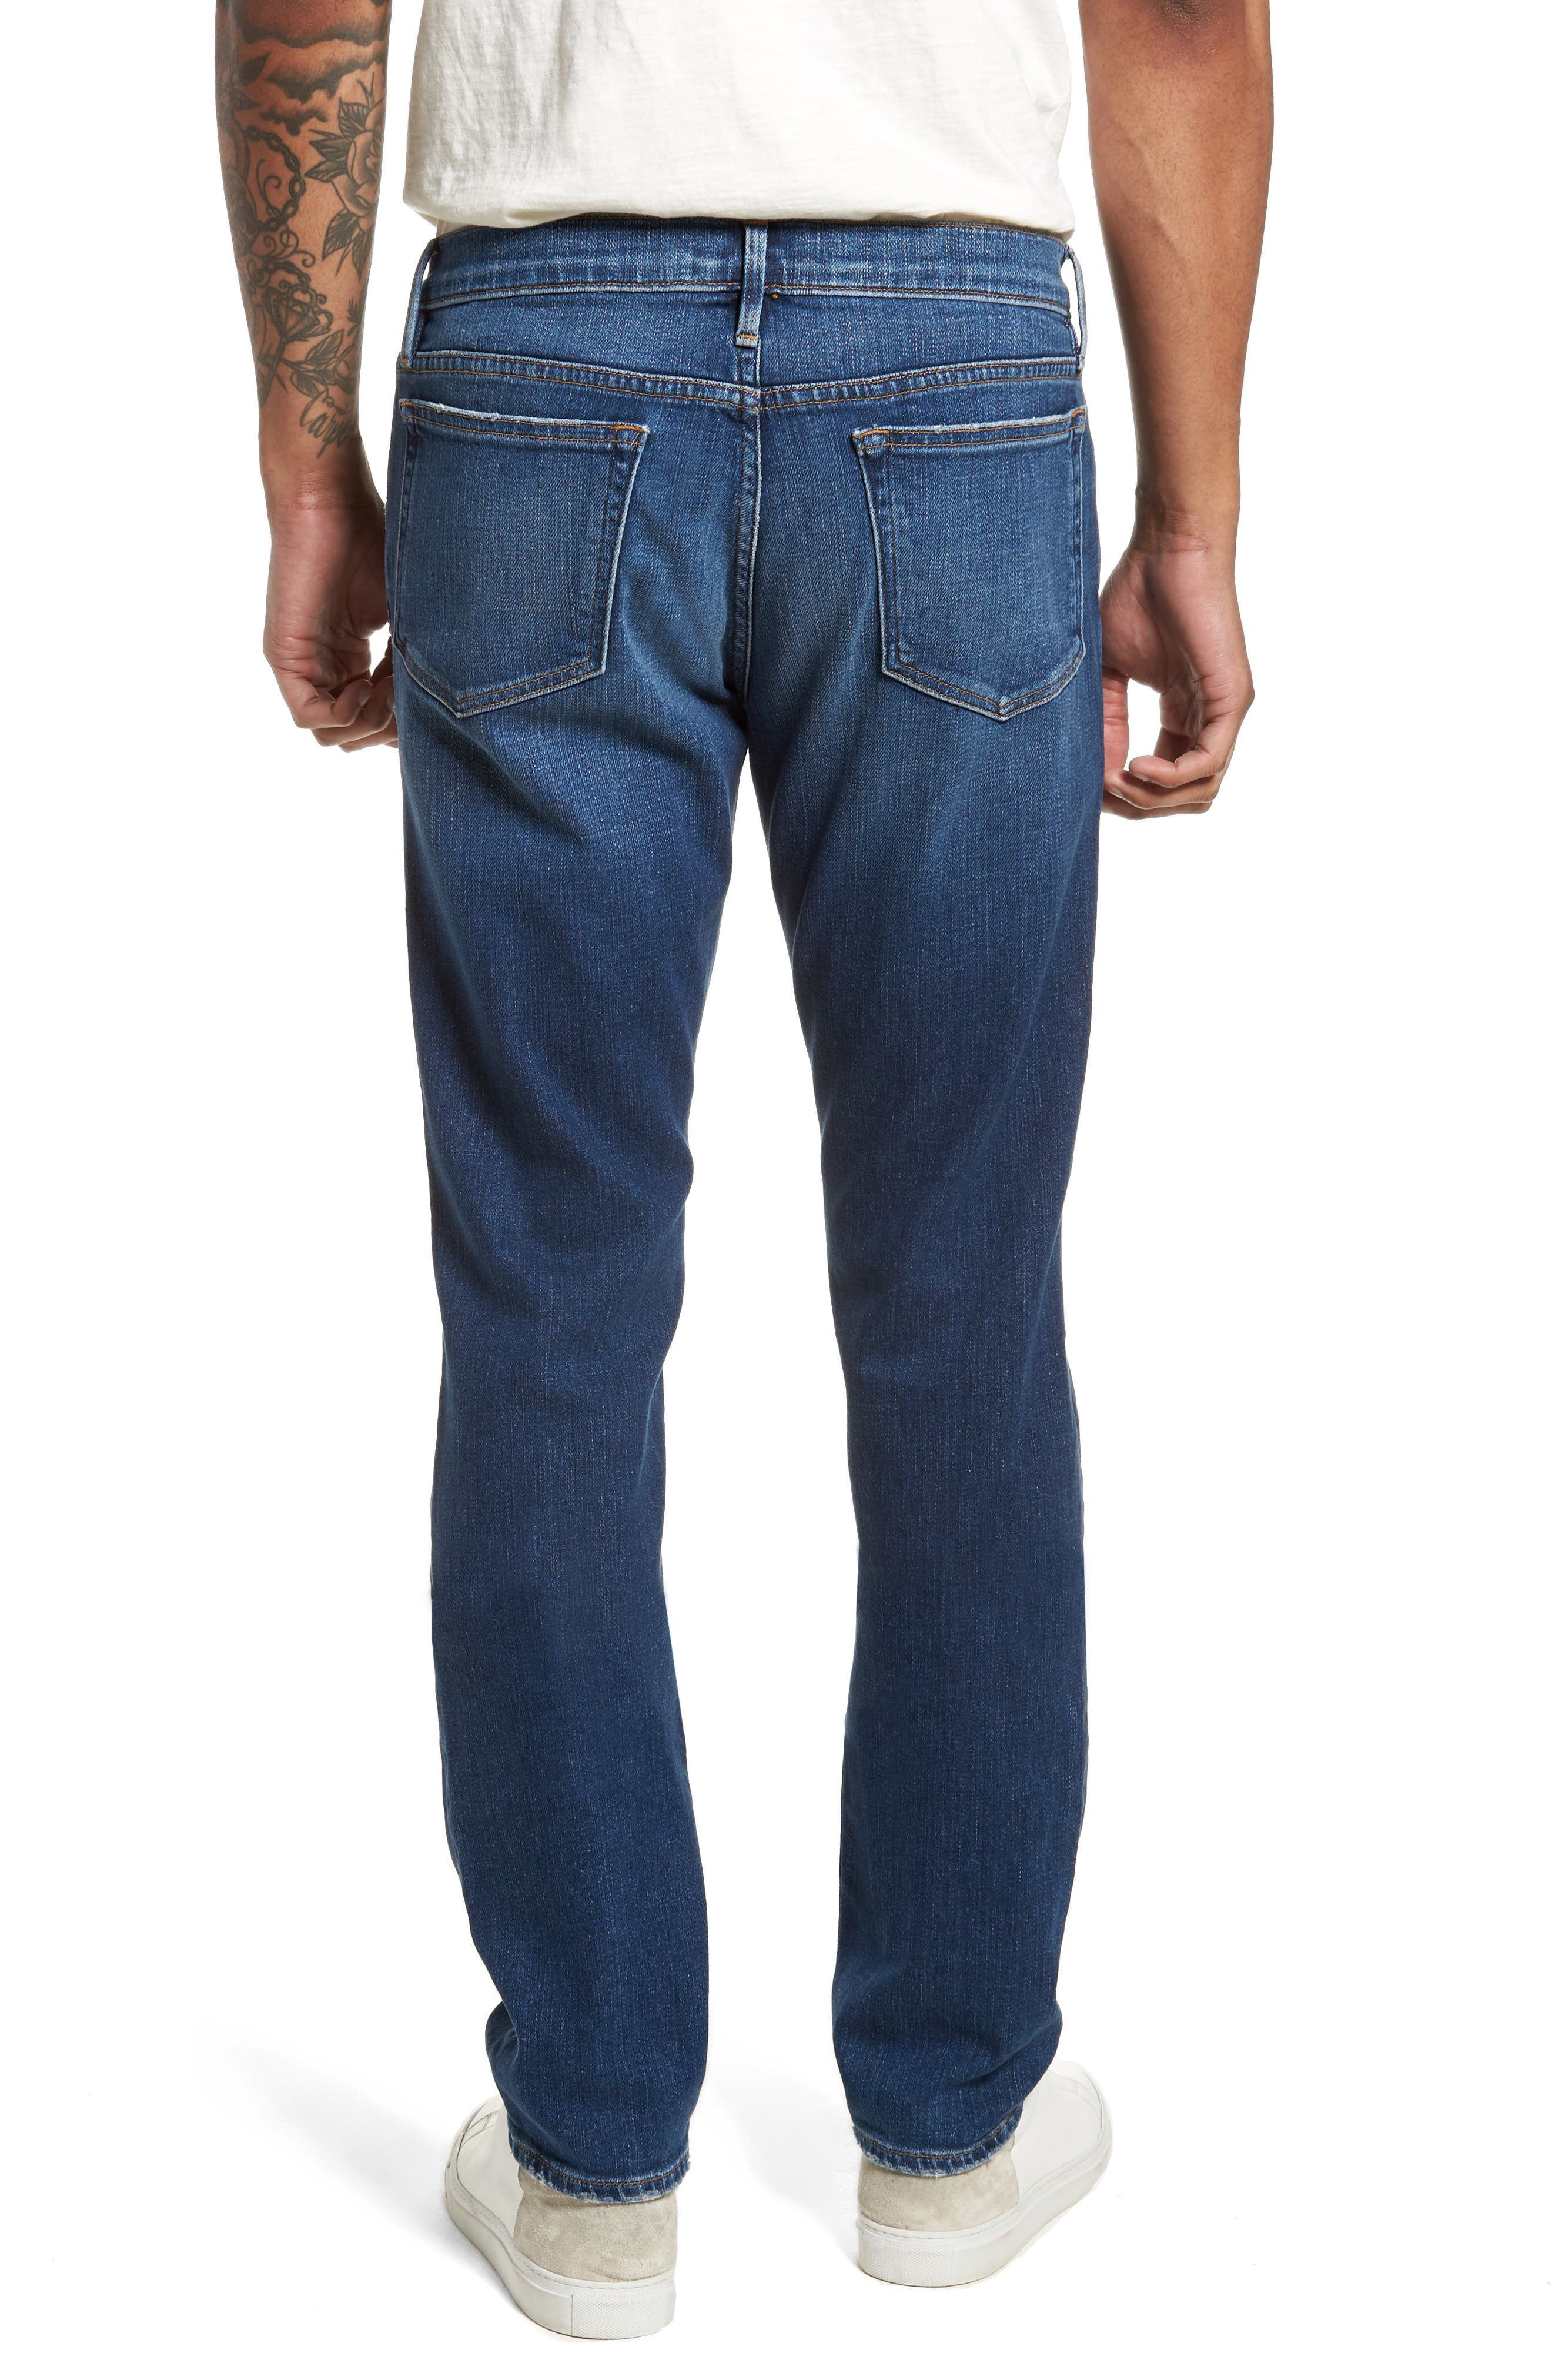 L'Homme Skinny Fit Jeans,                             Alternate thumbnail 2, color,                             Francis